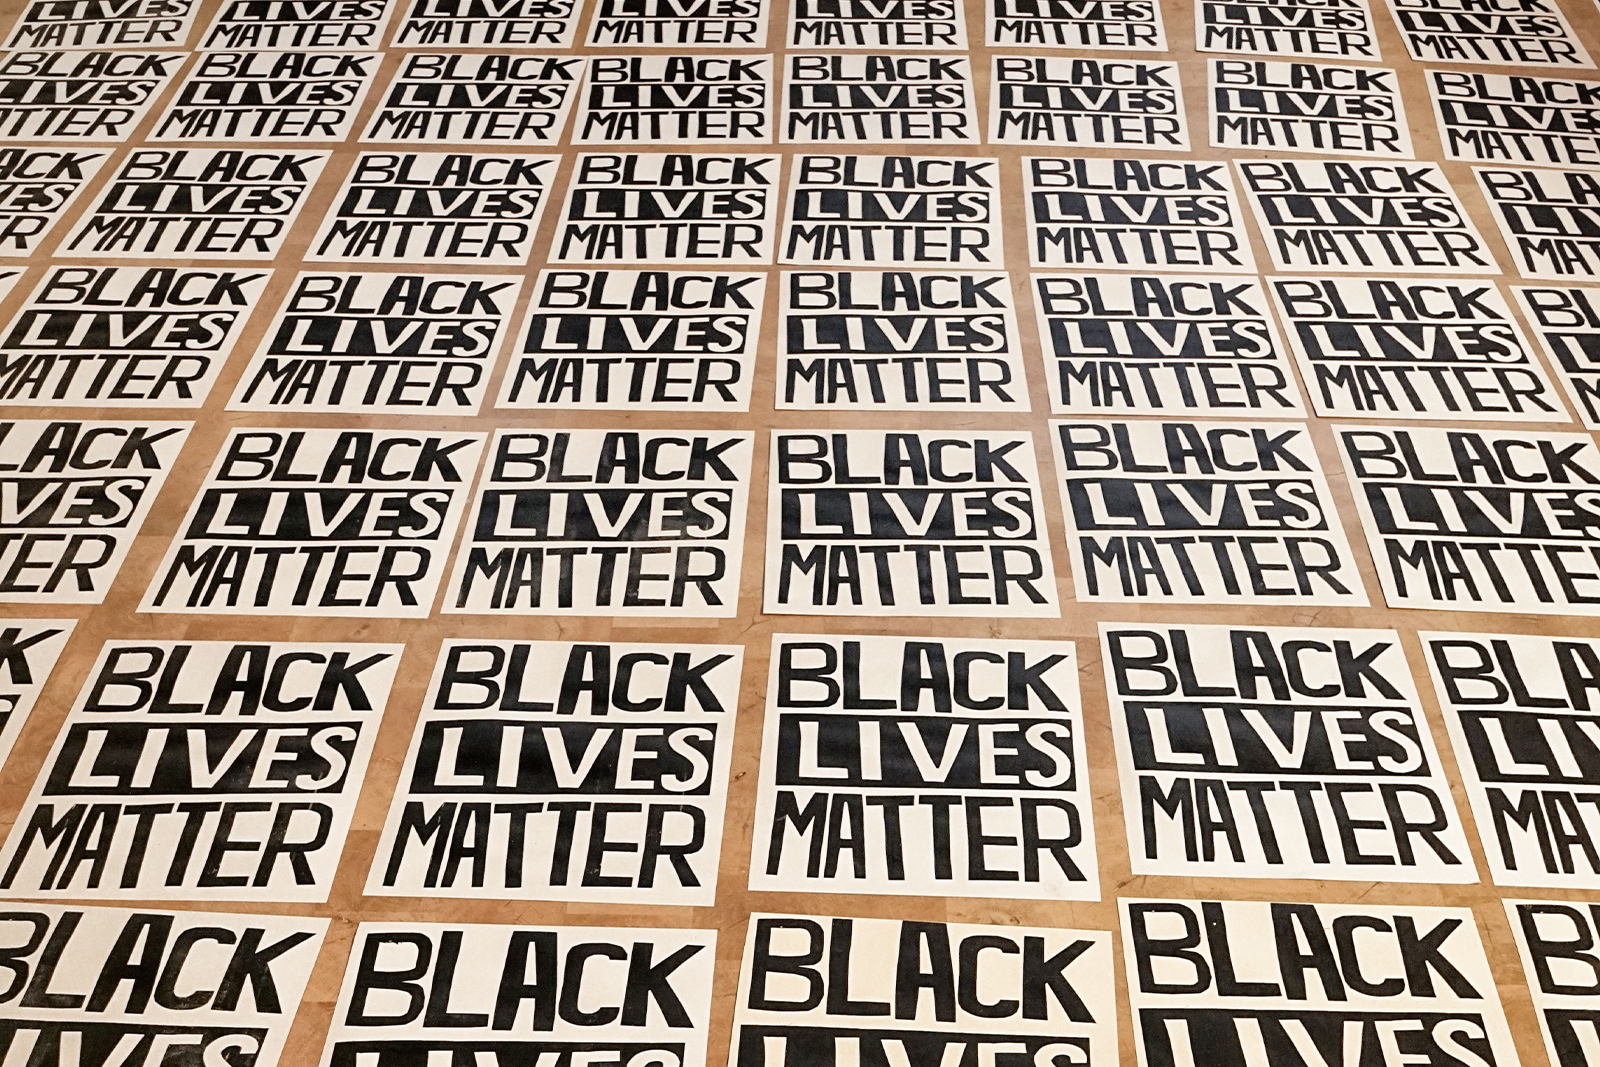 Hundreds of Black lives matter posters laying on the floor of the Wanda D Ewing gallery homepage